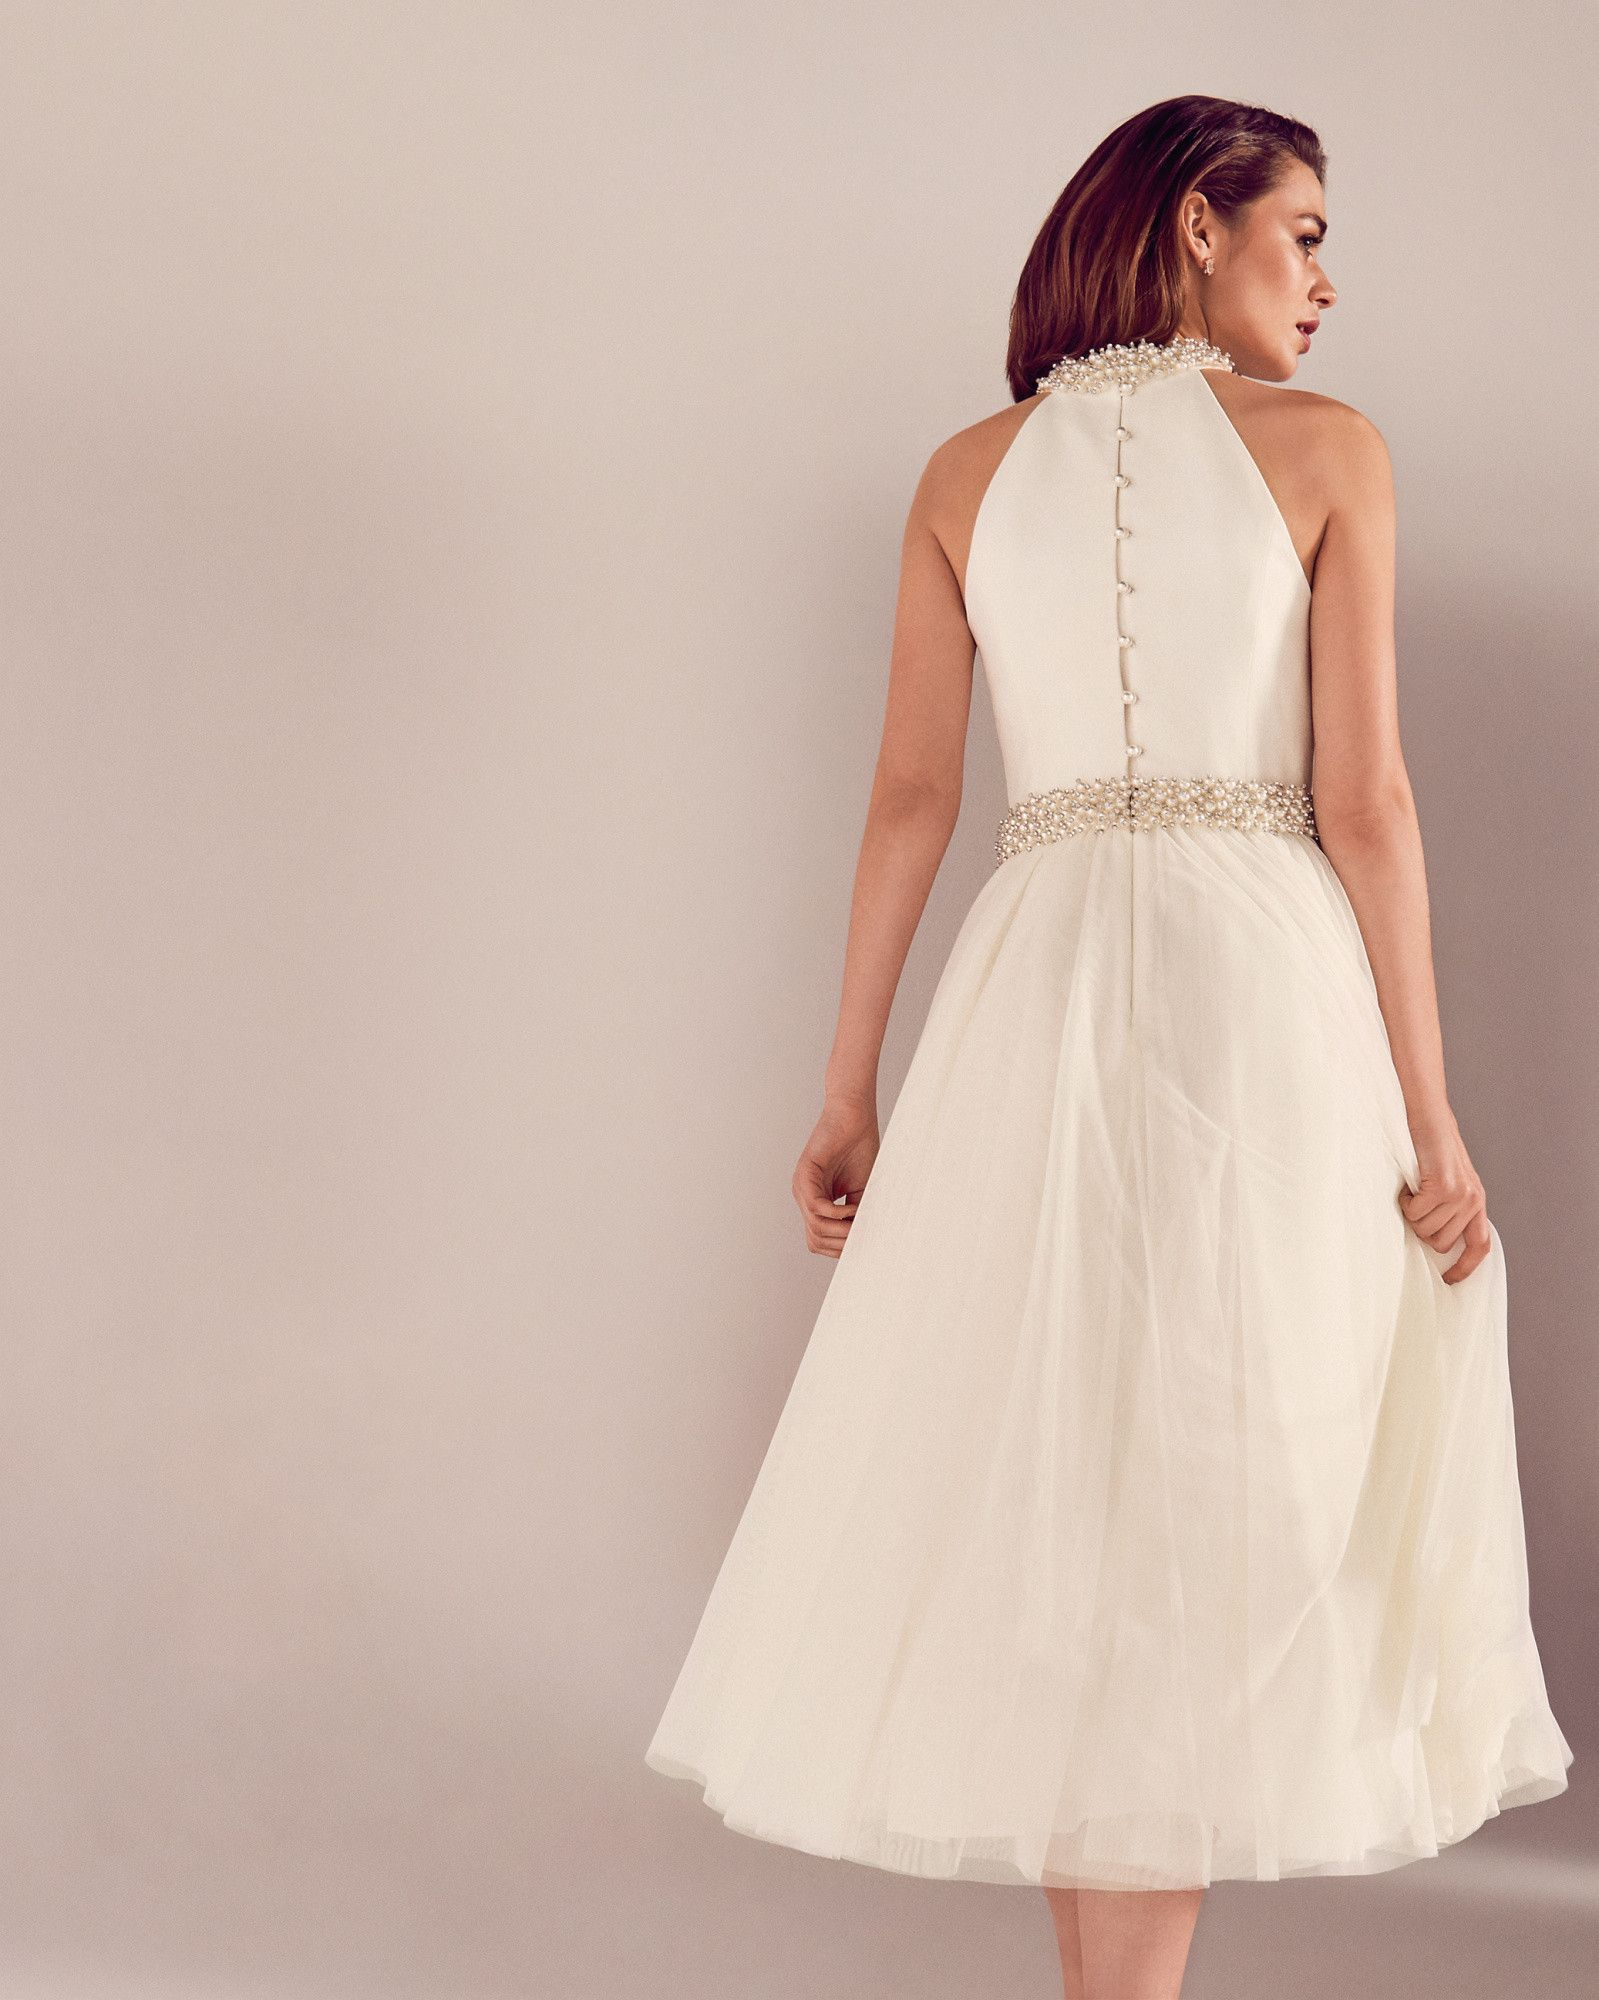 Embellished Tulle Bridal Dress White Ss17 Tie The Knot Ted Baker Uk